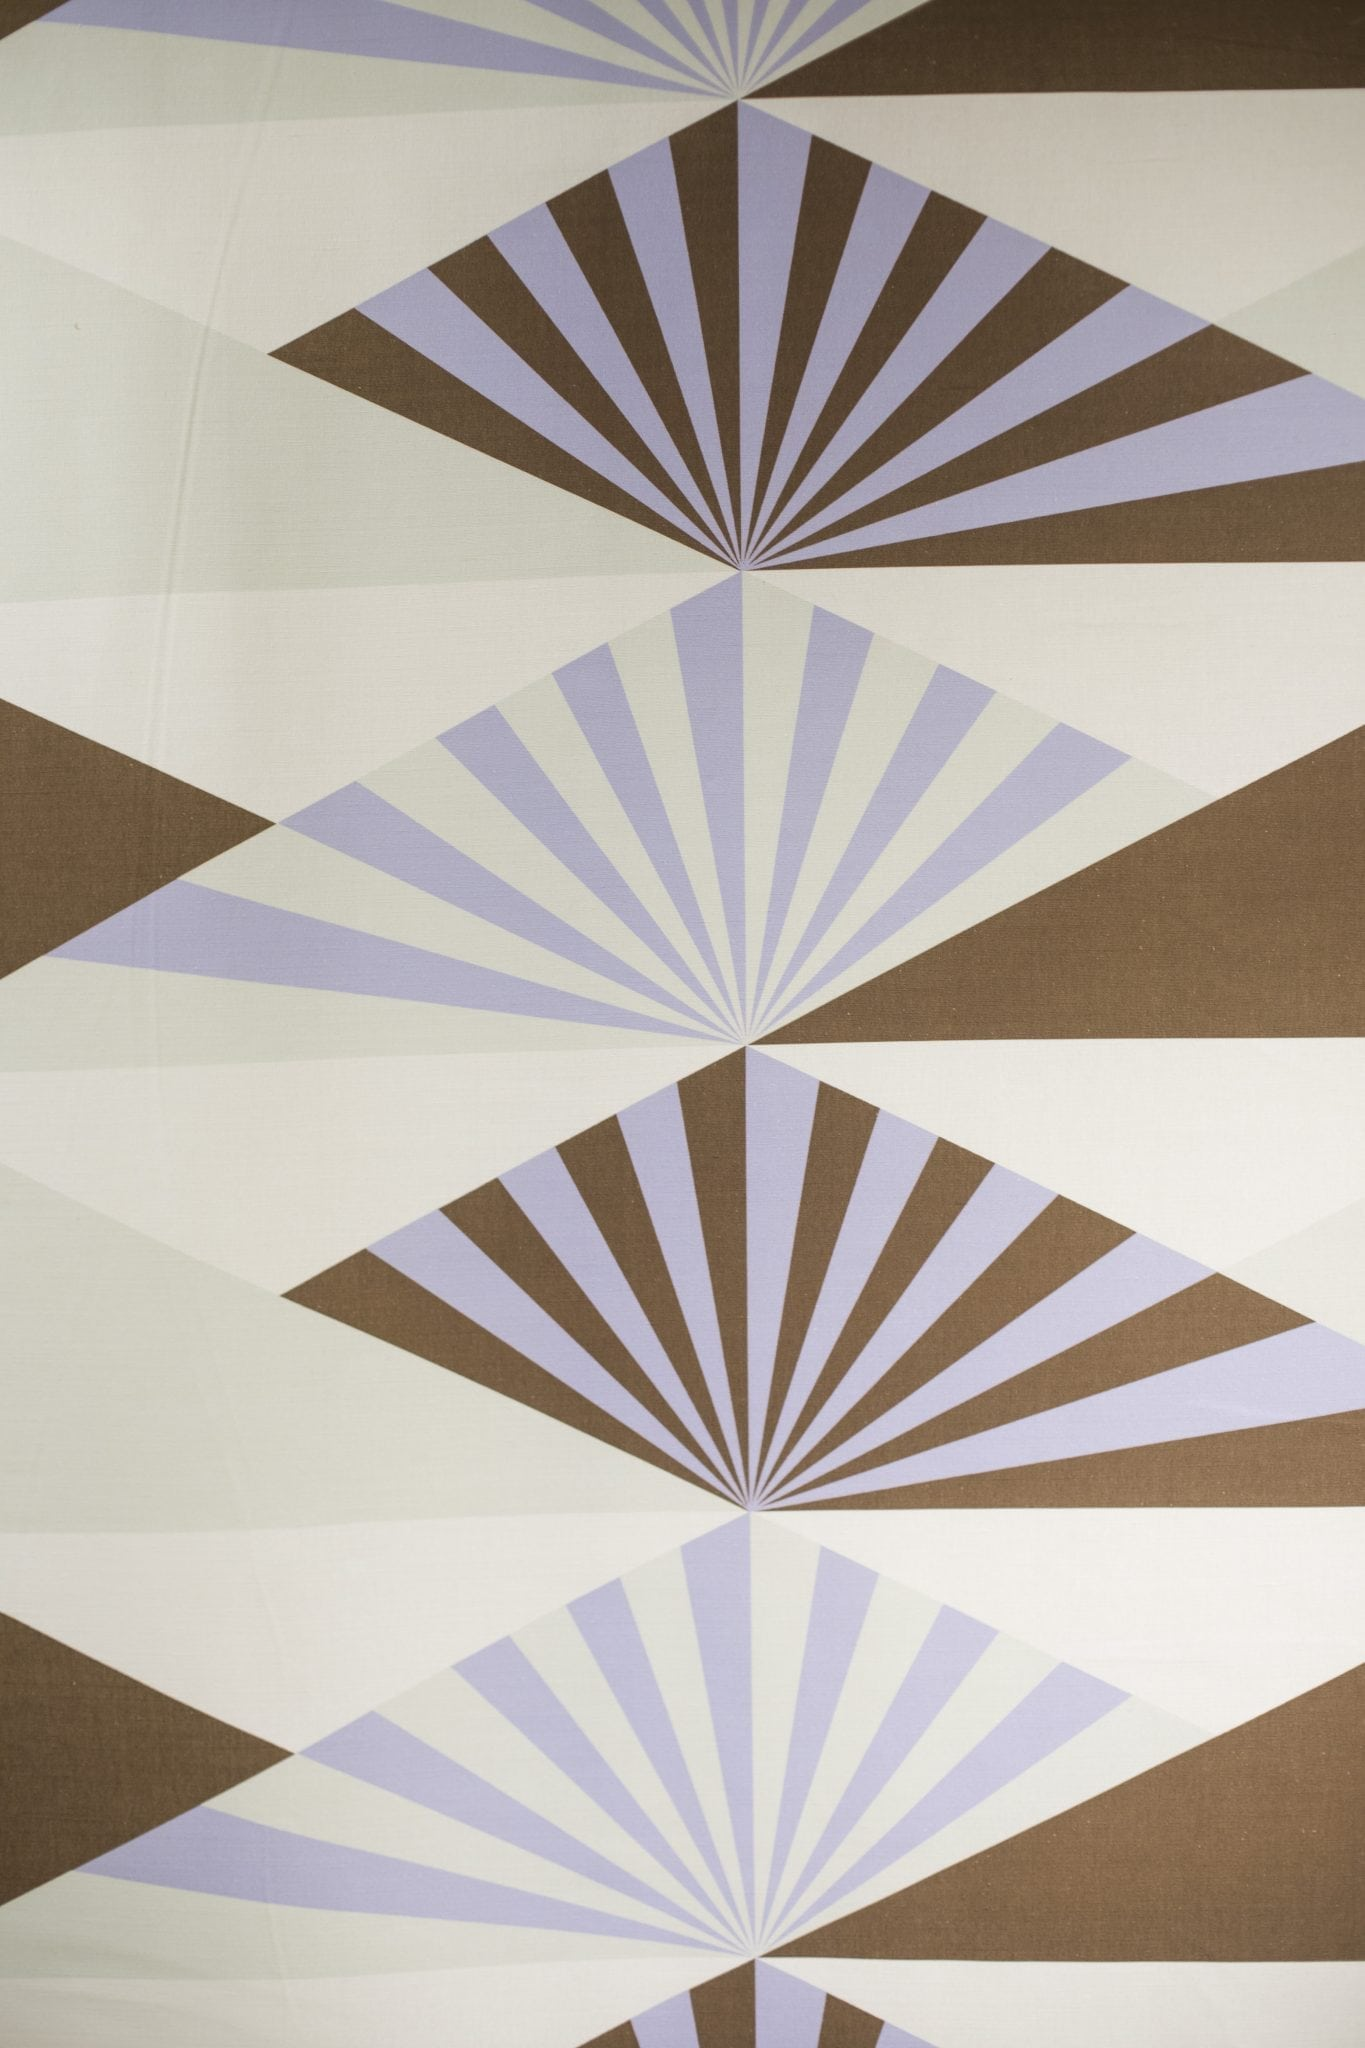 Lucienne Day: Living Design moves to The Oxfordshire Museum